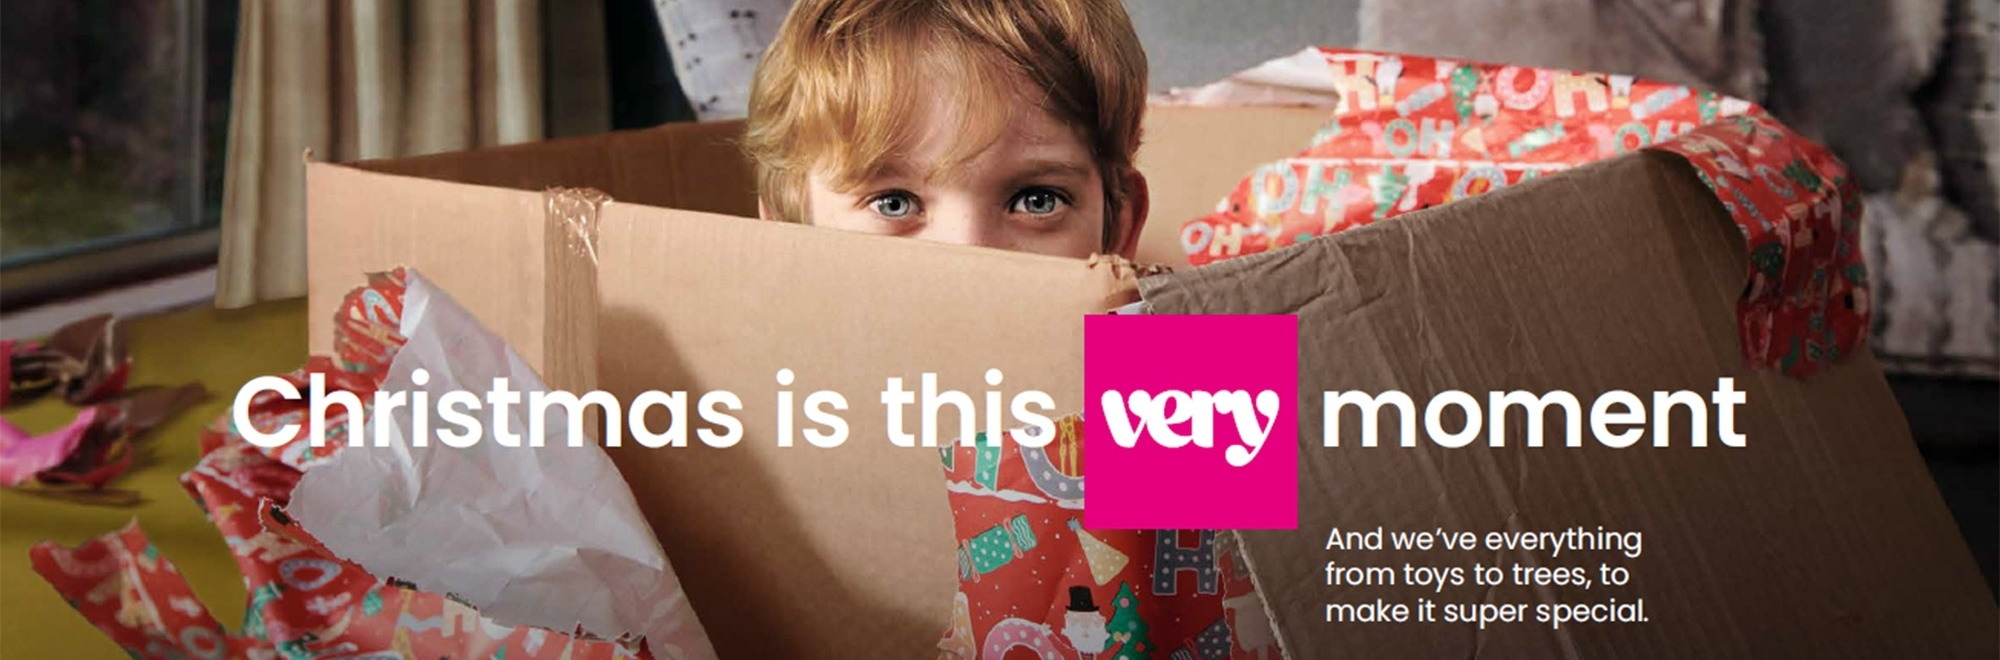 Very.co.uk's new campaign takes the cliché out of Christmas